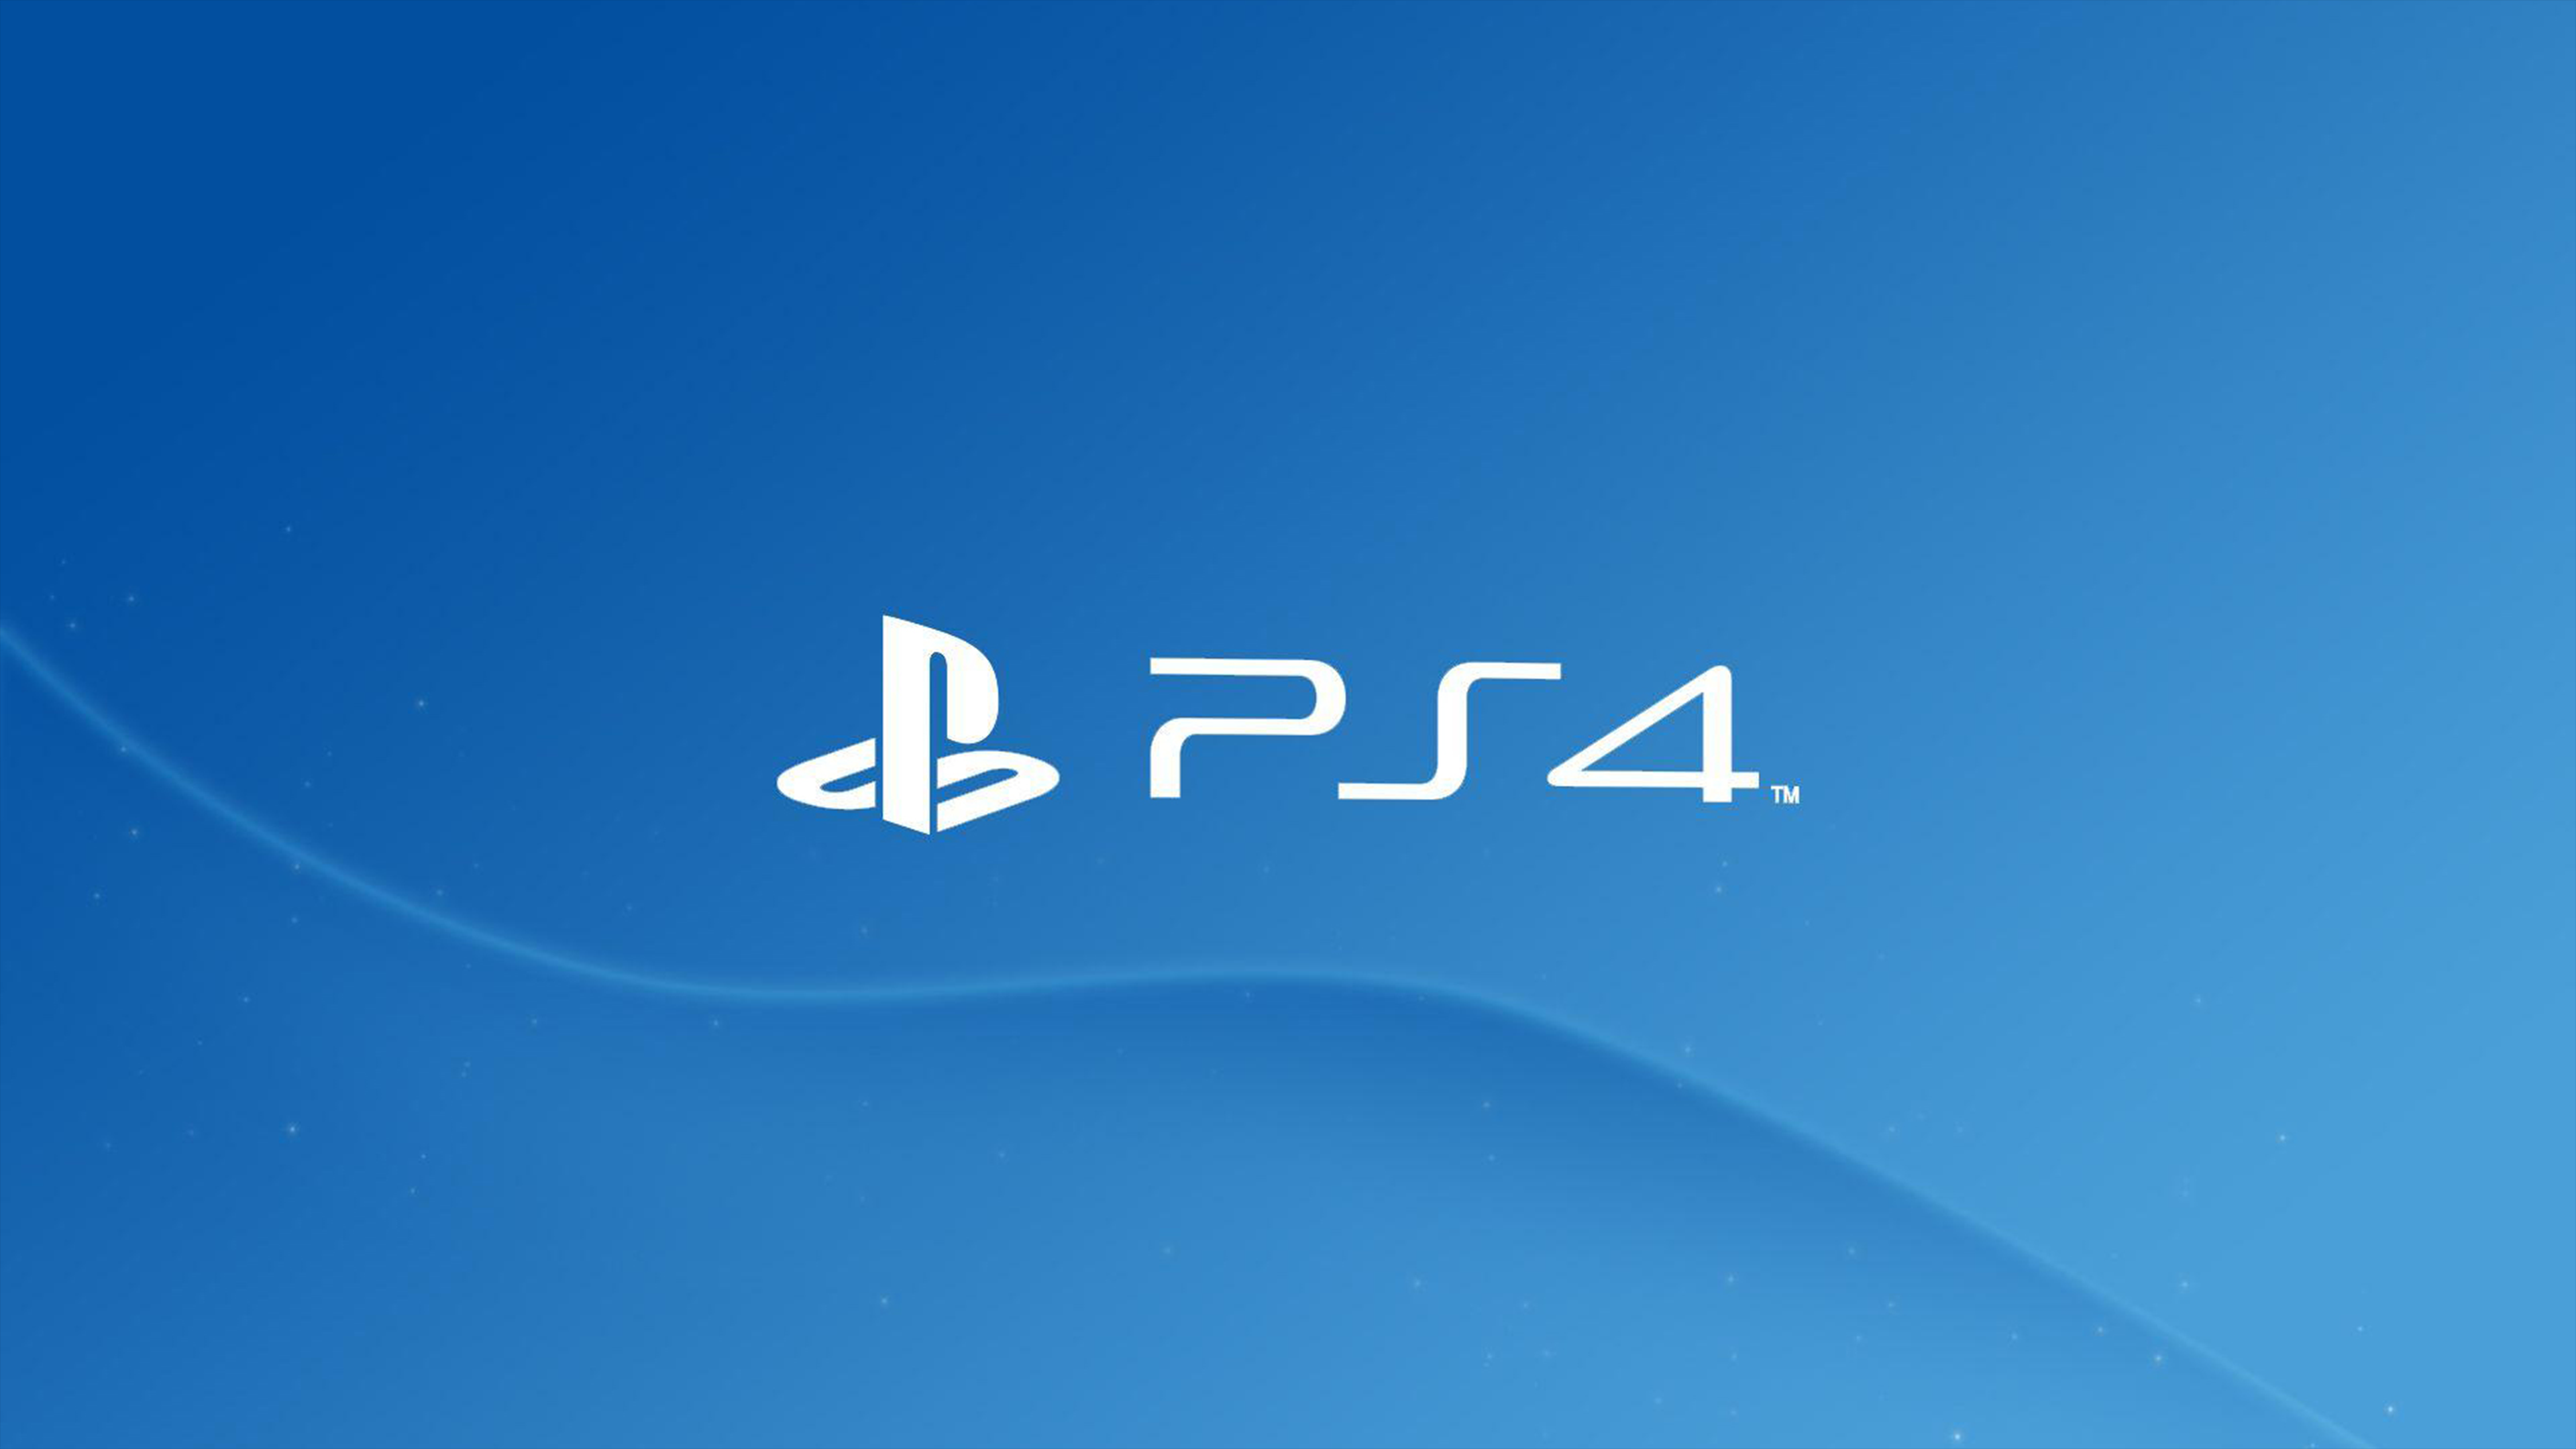 PS4 Pro High Resolution Wallpapers 1080p/4K